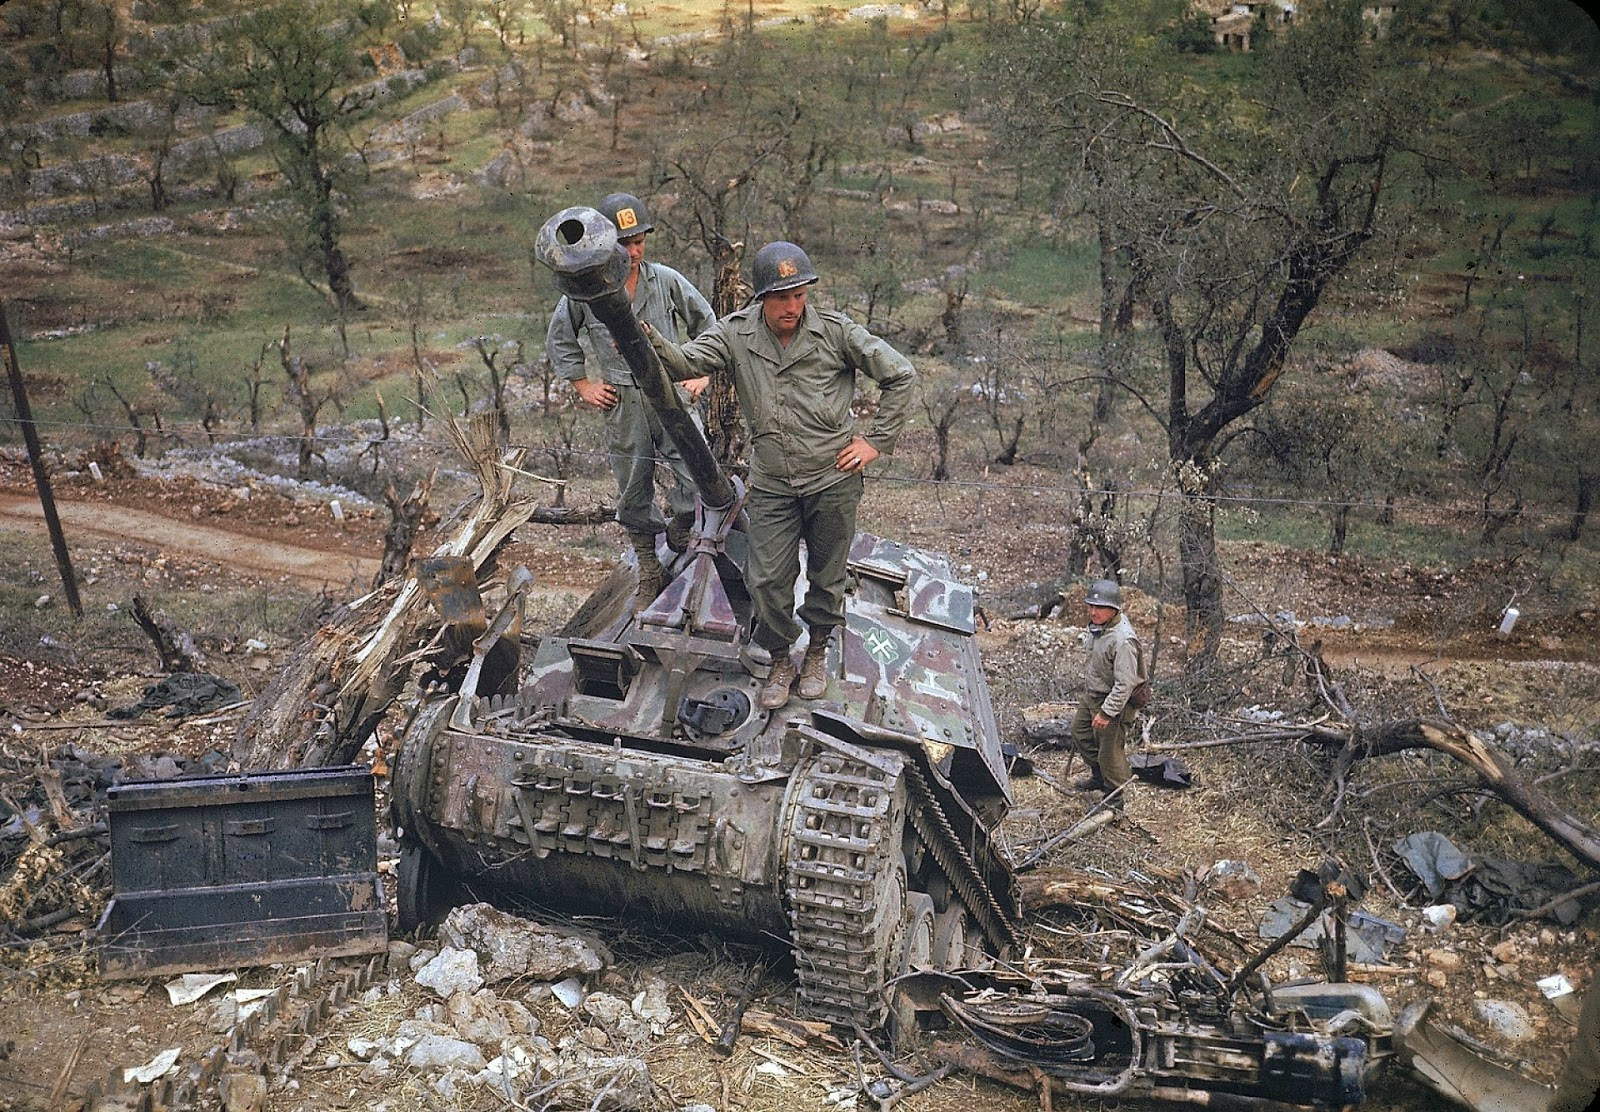 Tanques destruidos